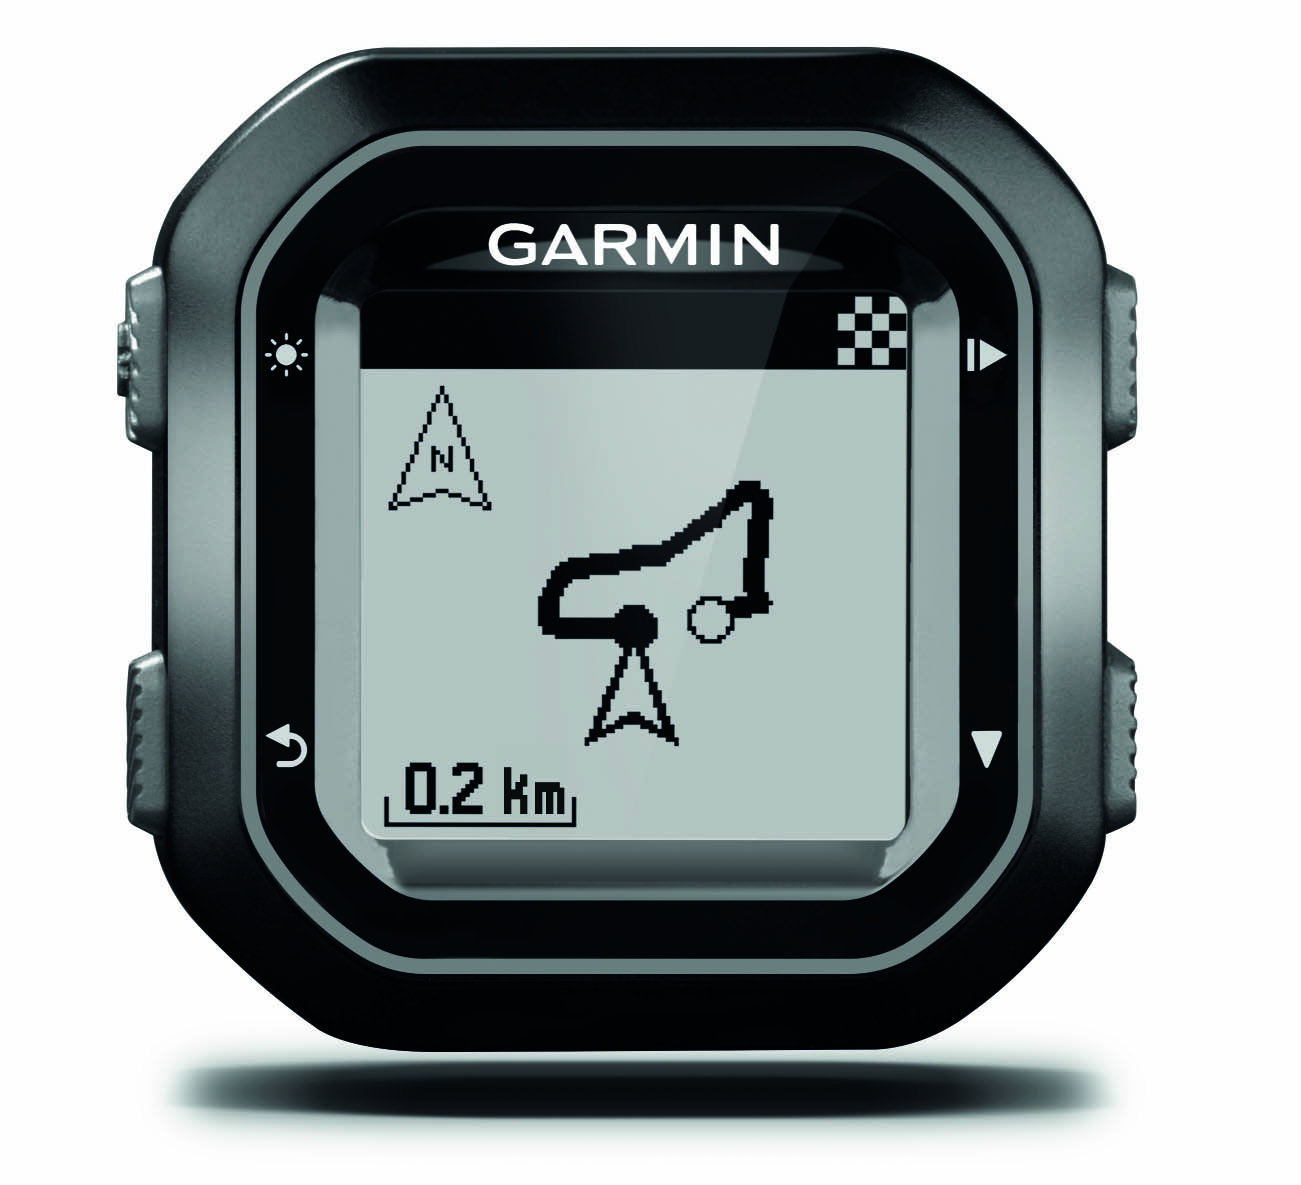 garmin edge 20 und edge 25 mini gps fahrradcomputer. Black Bedroom Furniture Sets. Home Design Ideas